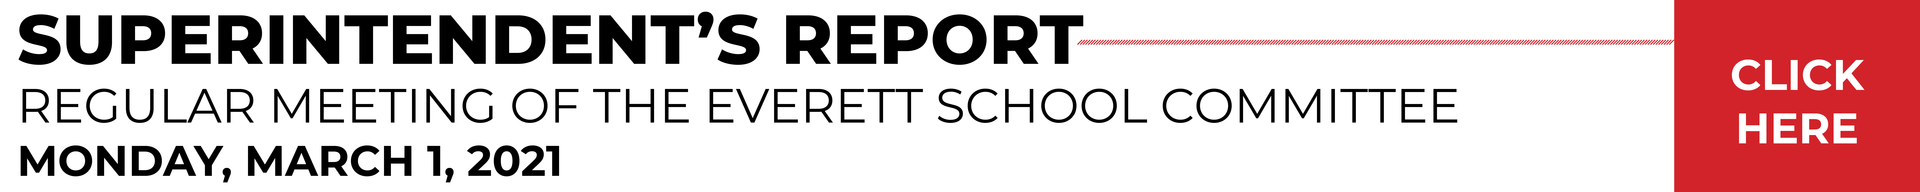 Text banner, superintendent's report